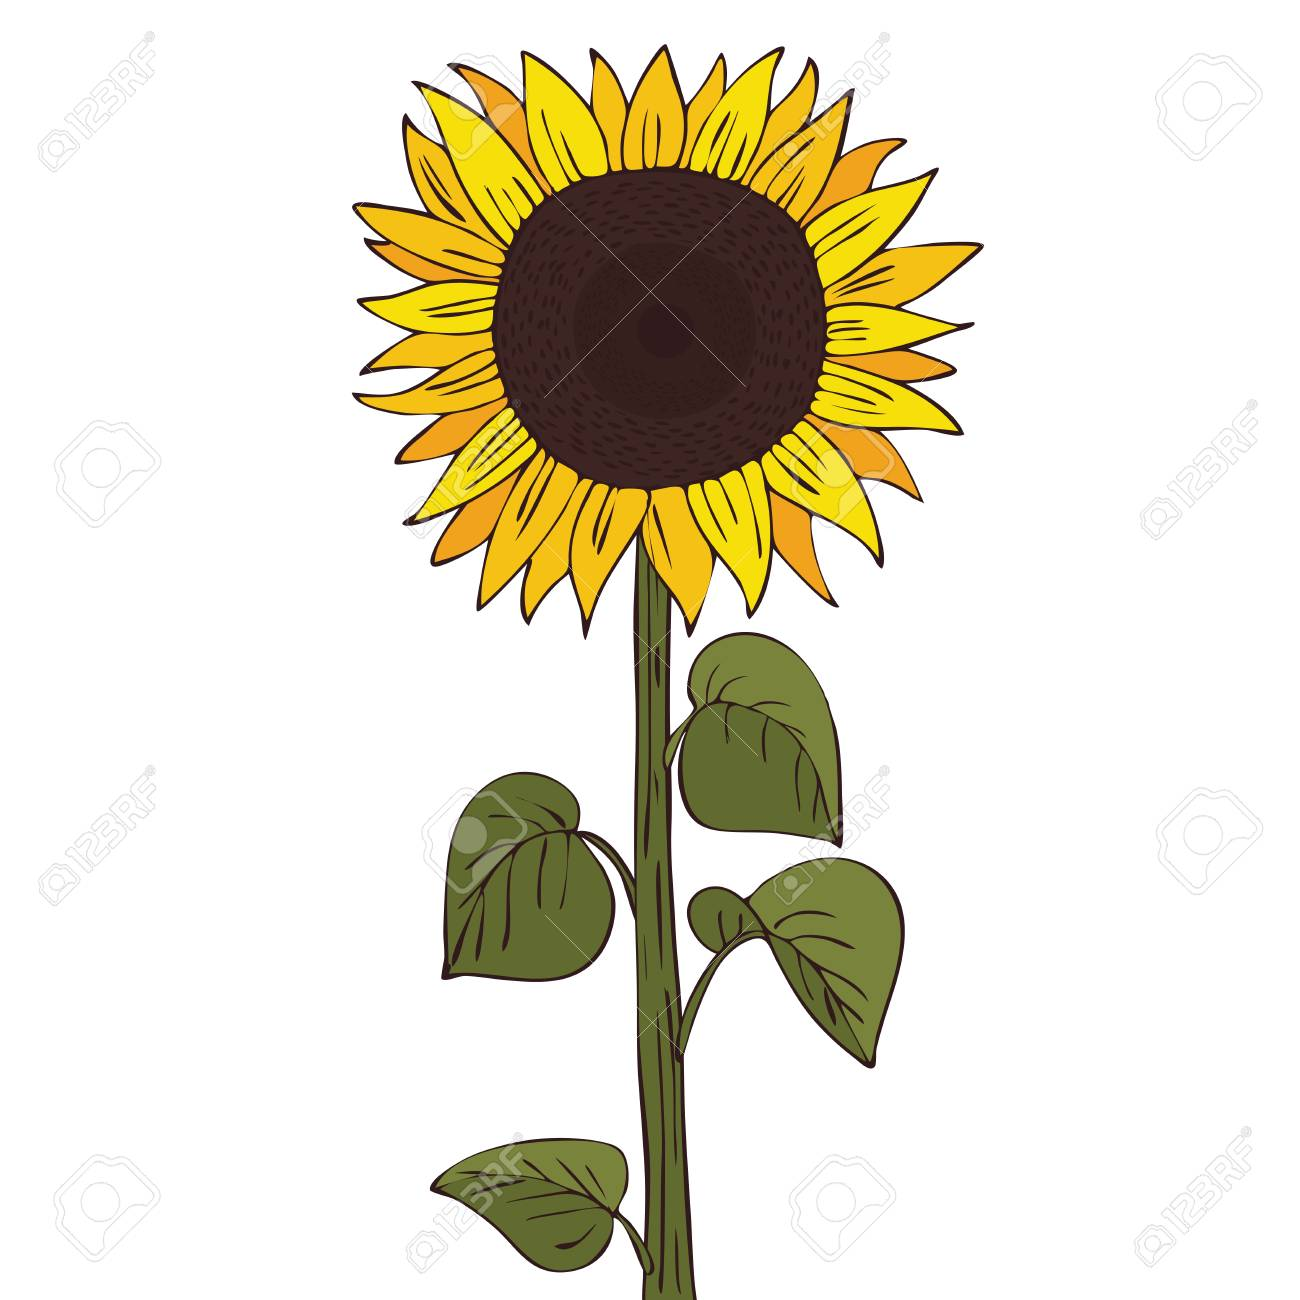 isolate helianthus or sunflower vector illustration royalty free rh 123rf com sunflower vector free download sunflower vector logo